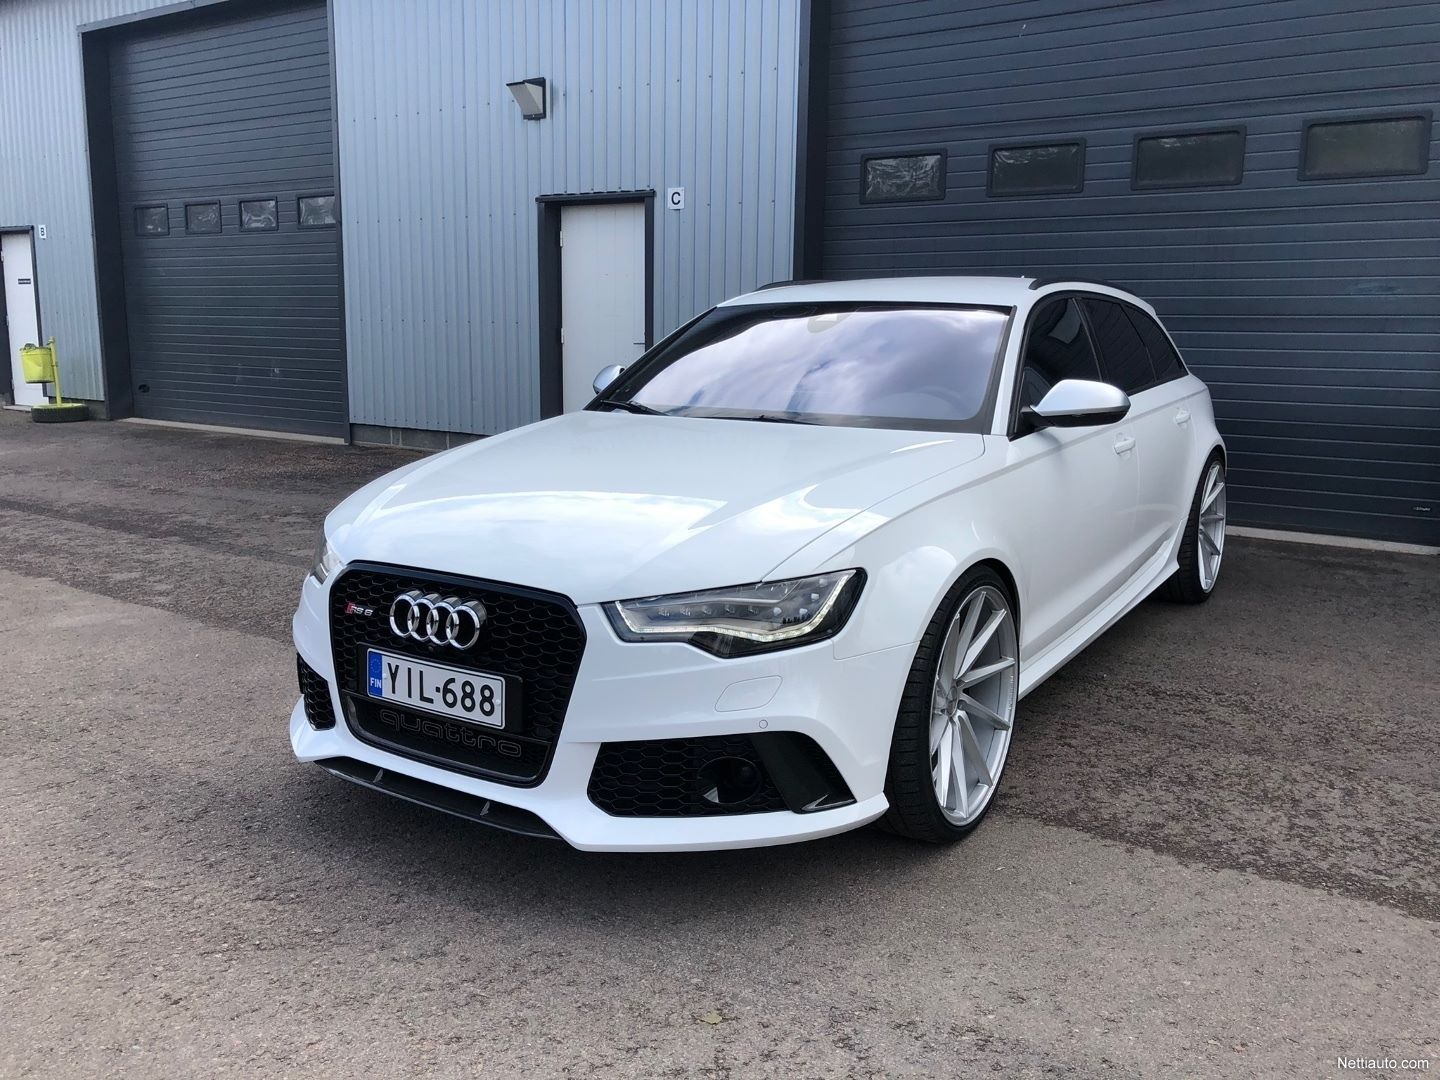 Audi-RS6-Avant-Kimi-Raikkonen-for-sale-6